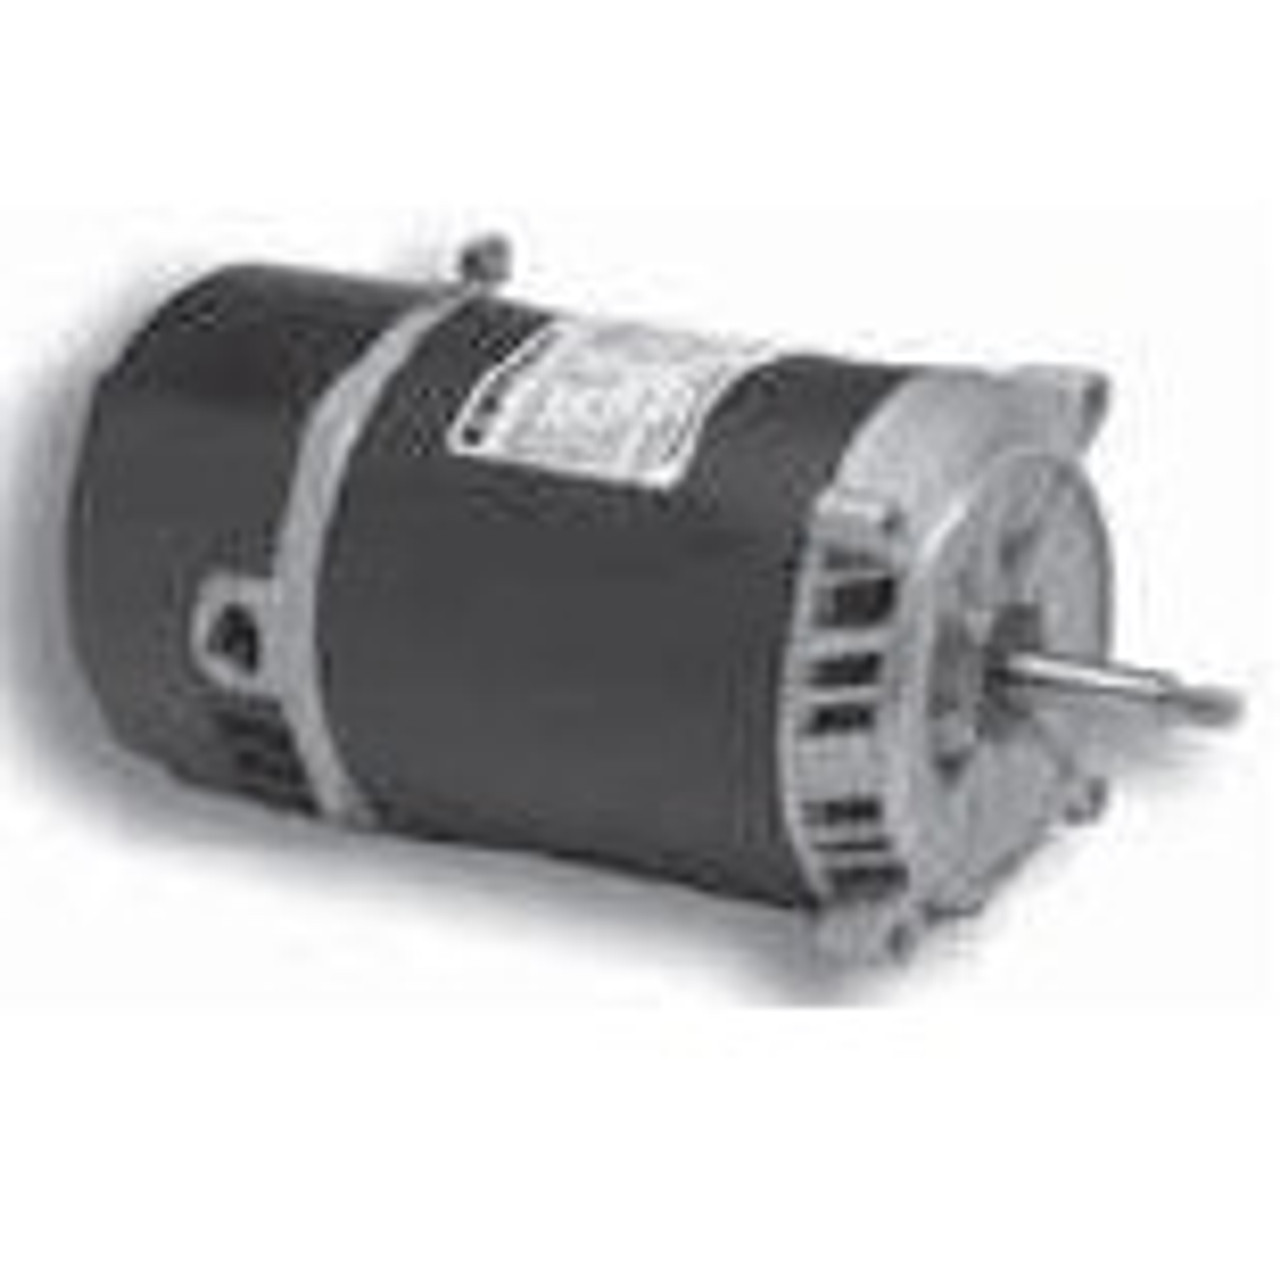 C1090 Two-Compartment Single Phase Dripproof Jet Pump 1 HP